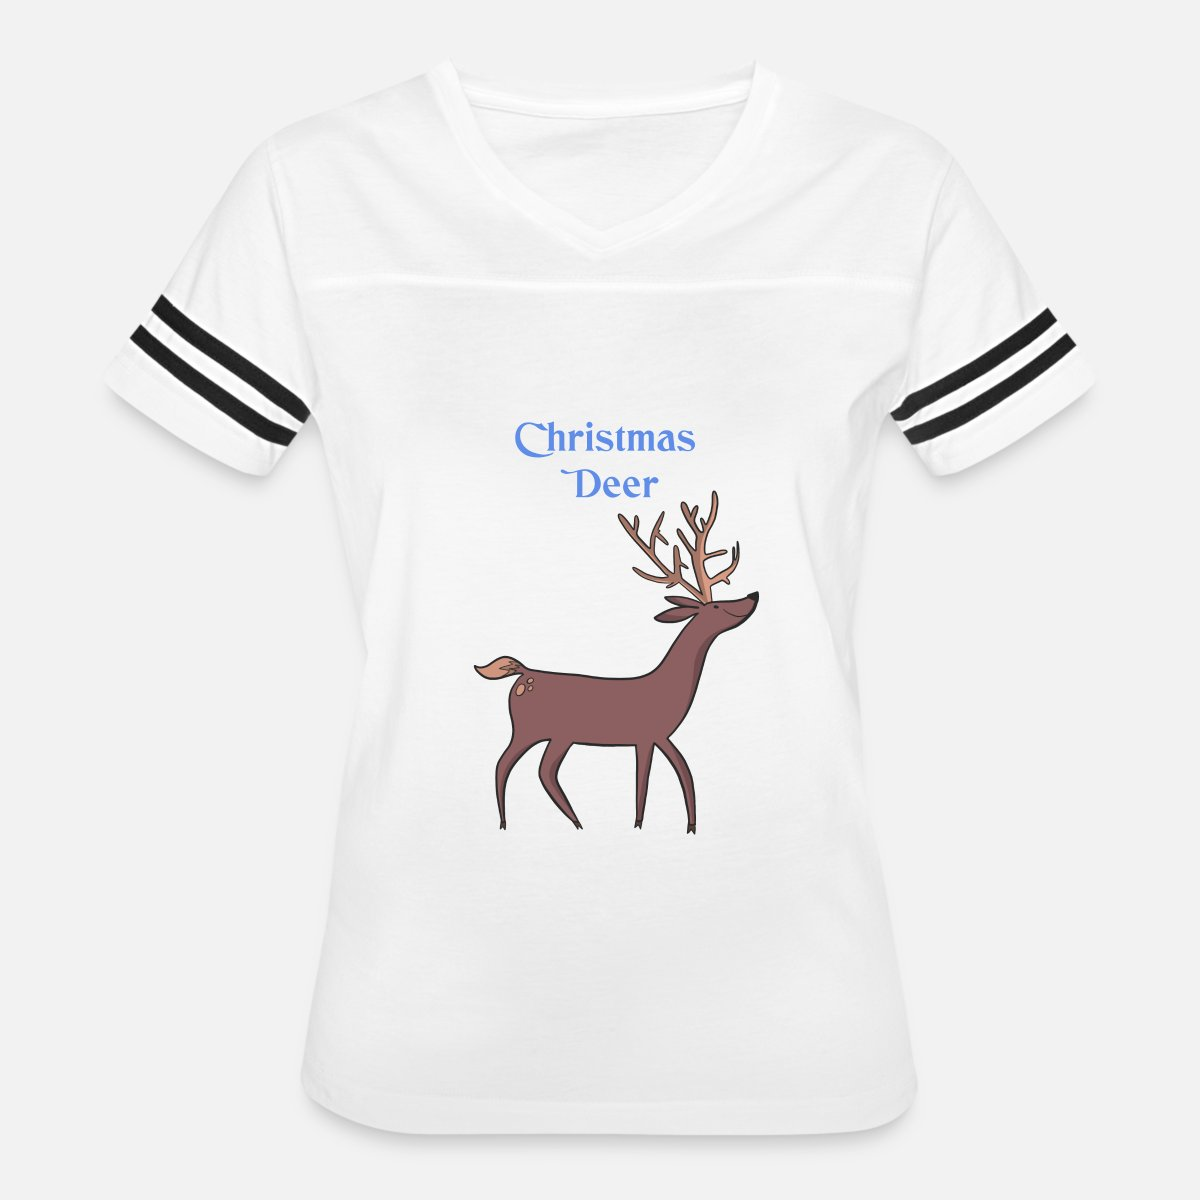 Christmas Shirt Design For Kids & Toddlers by | Spreadshirt